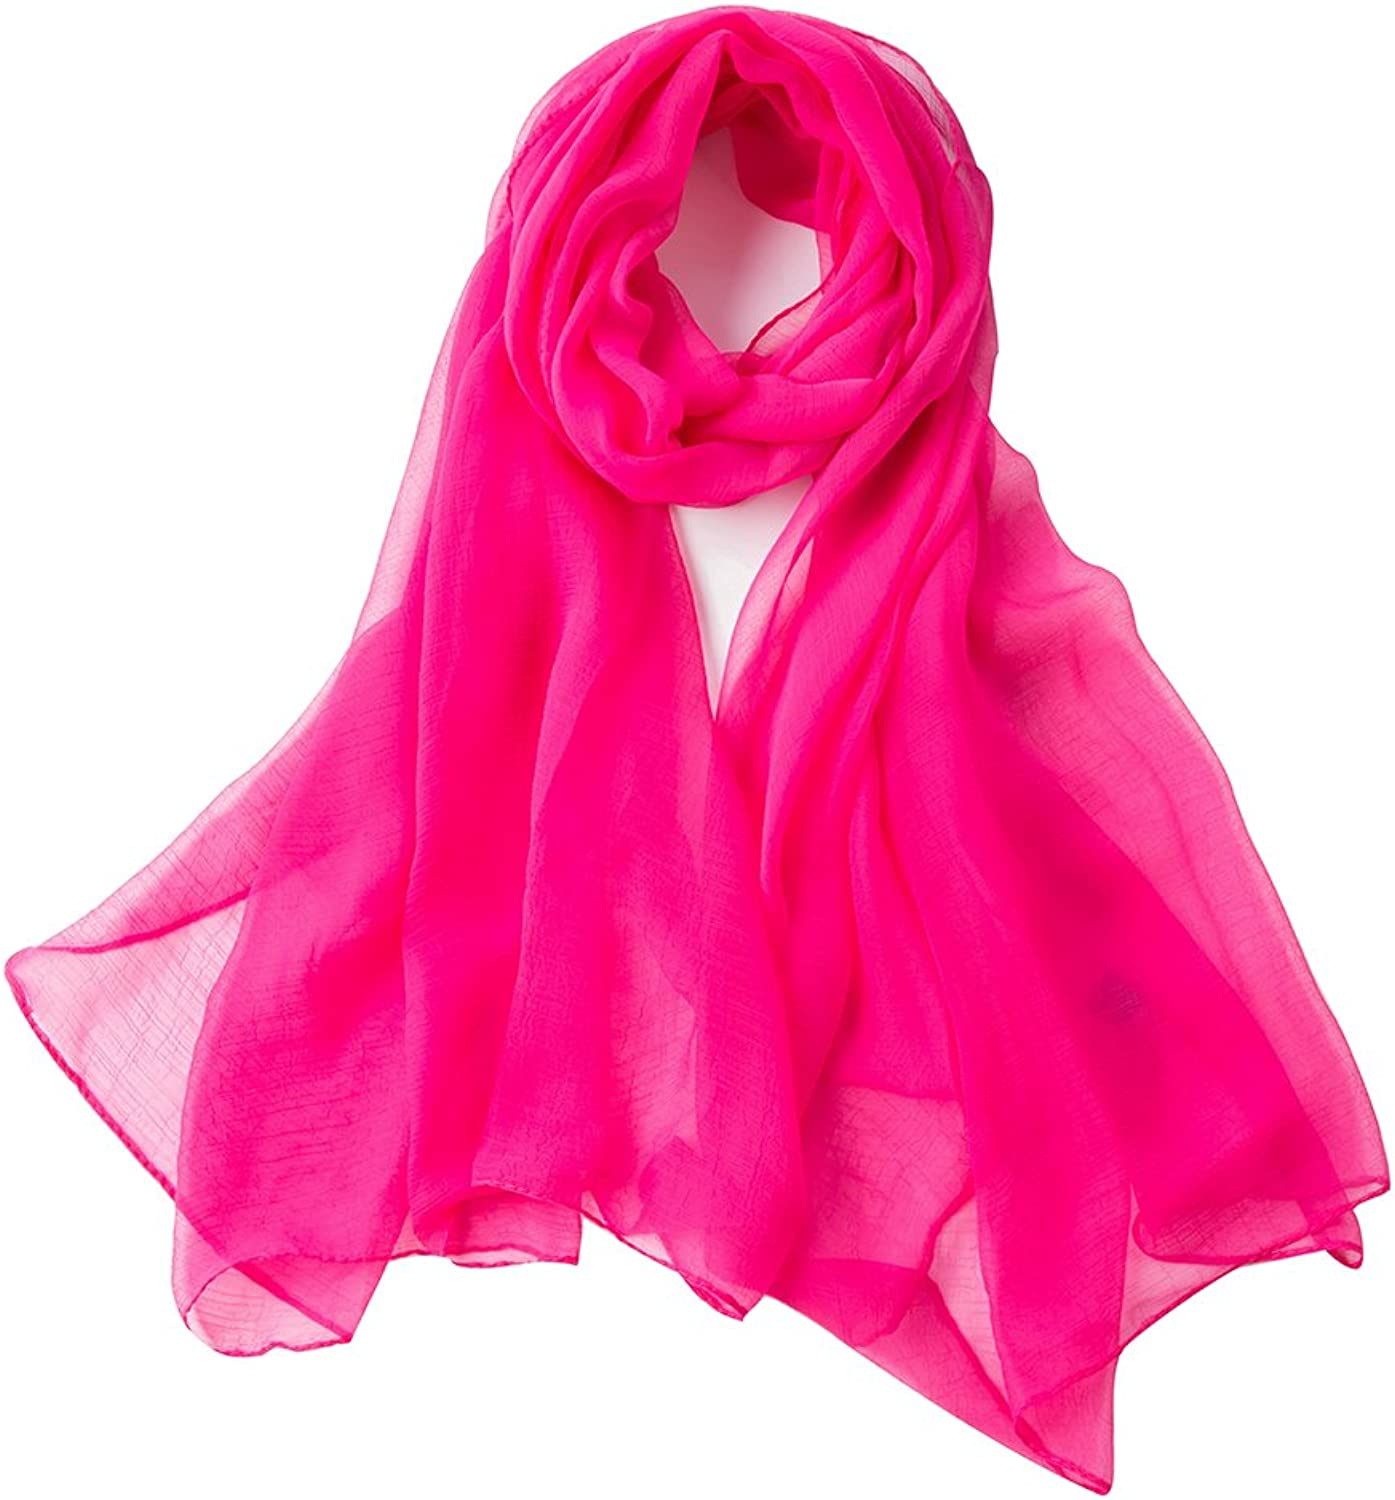 Fashion folding lightweight silky solid colors scarves for women oblong shawl